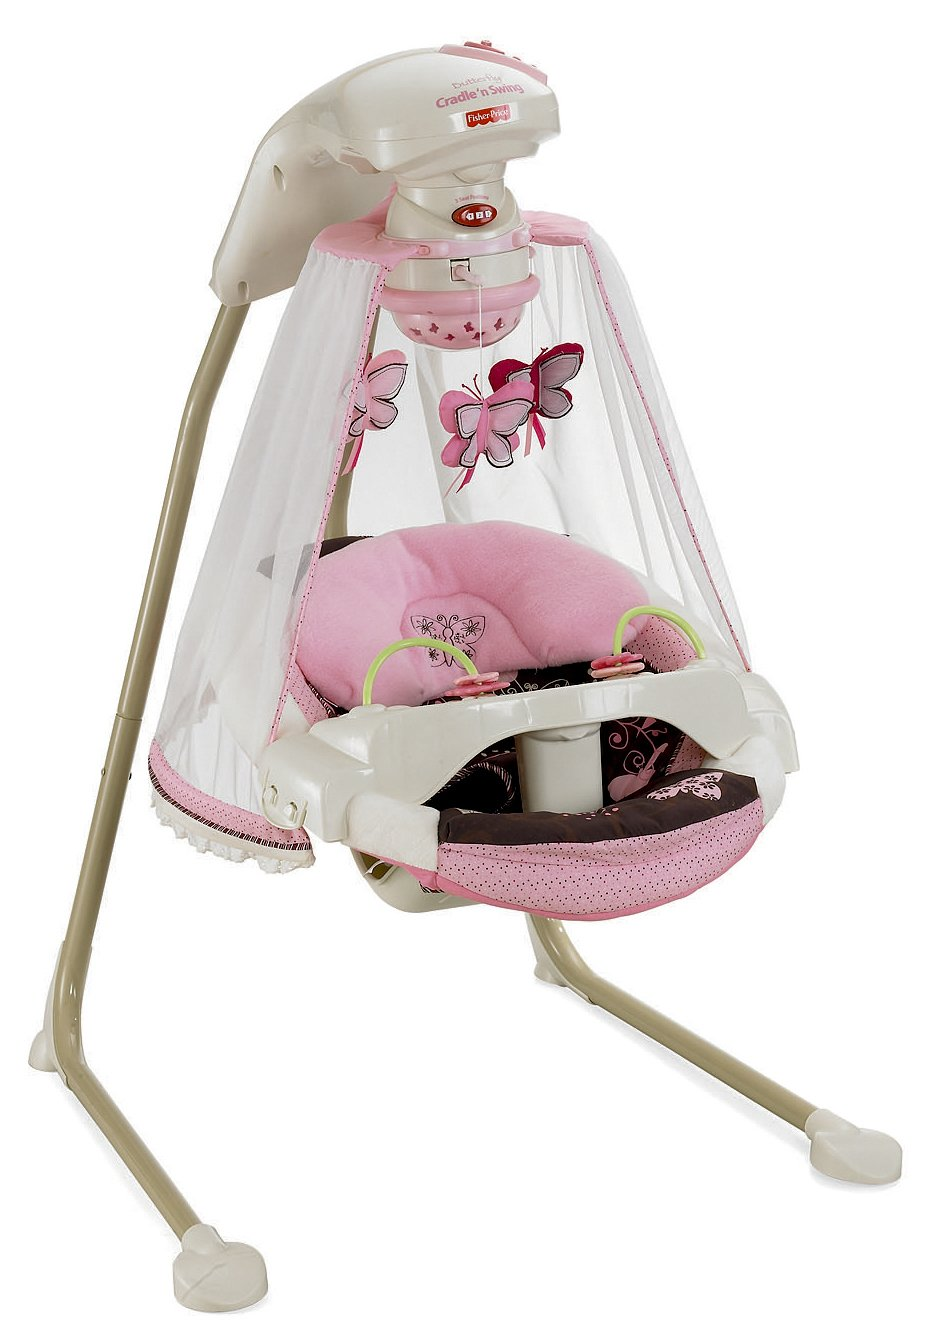 Best Baby Swing Top Best Baby Swing Reviews On The 2016